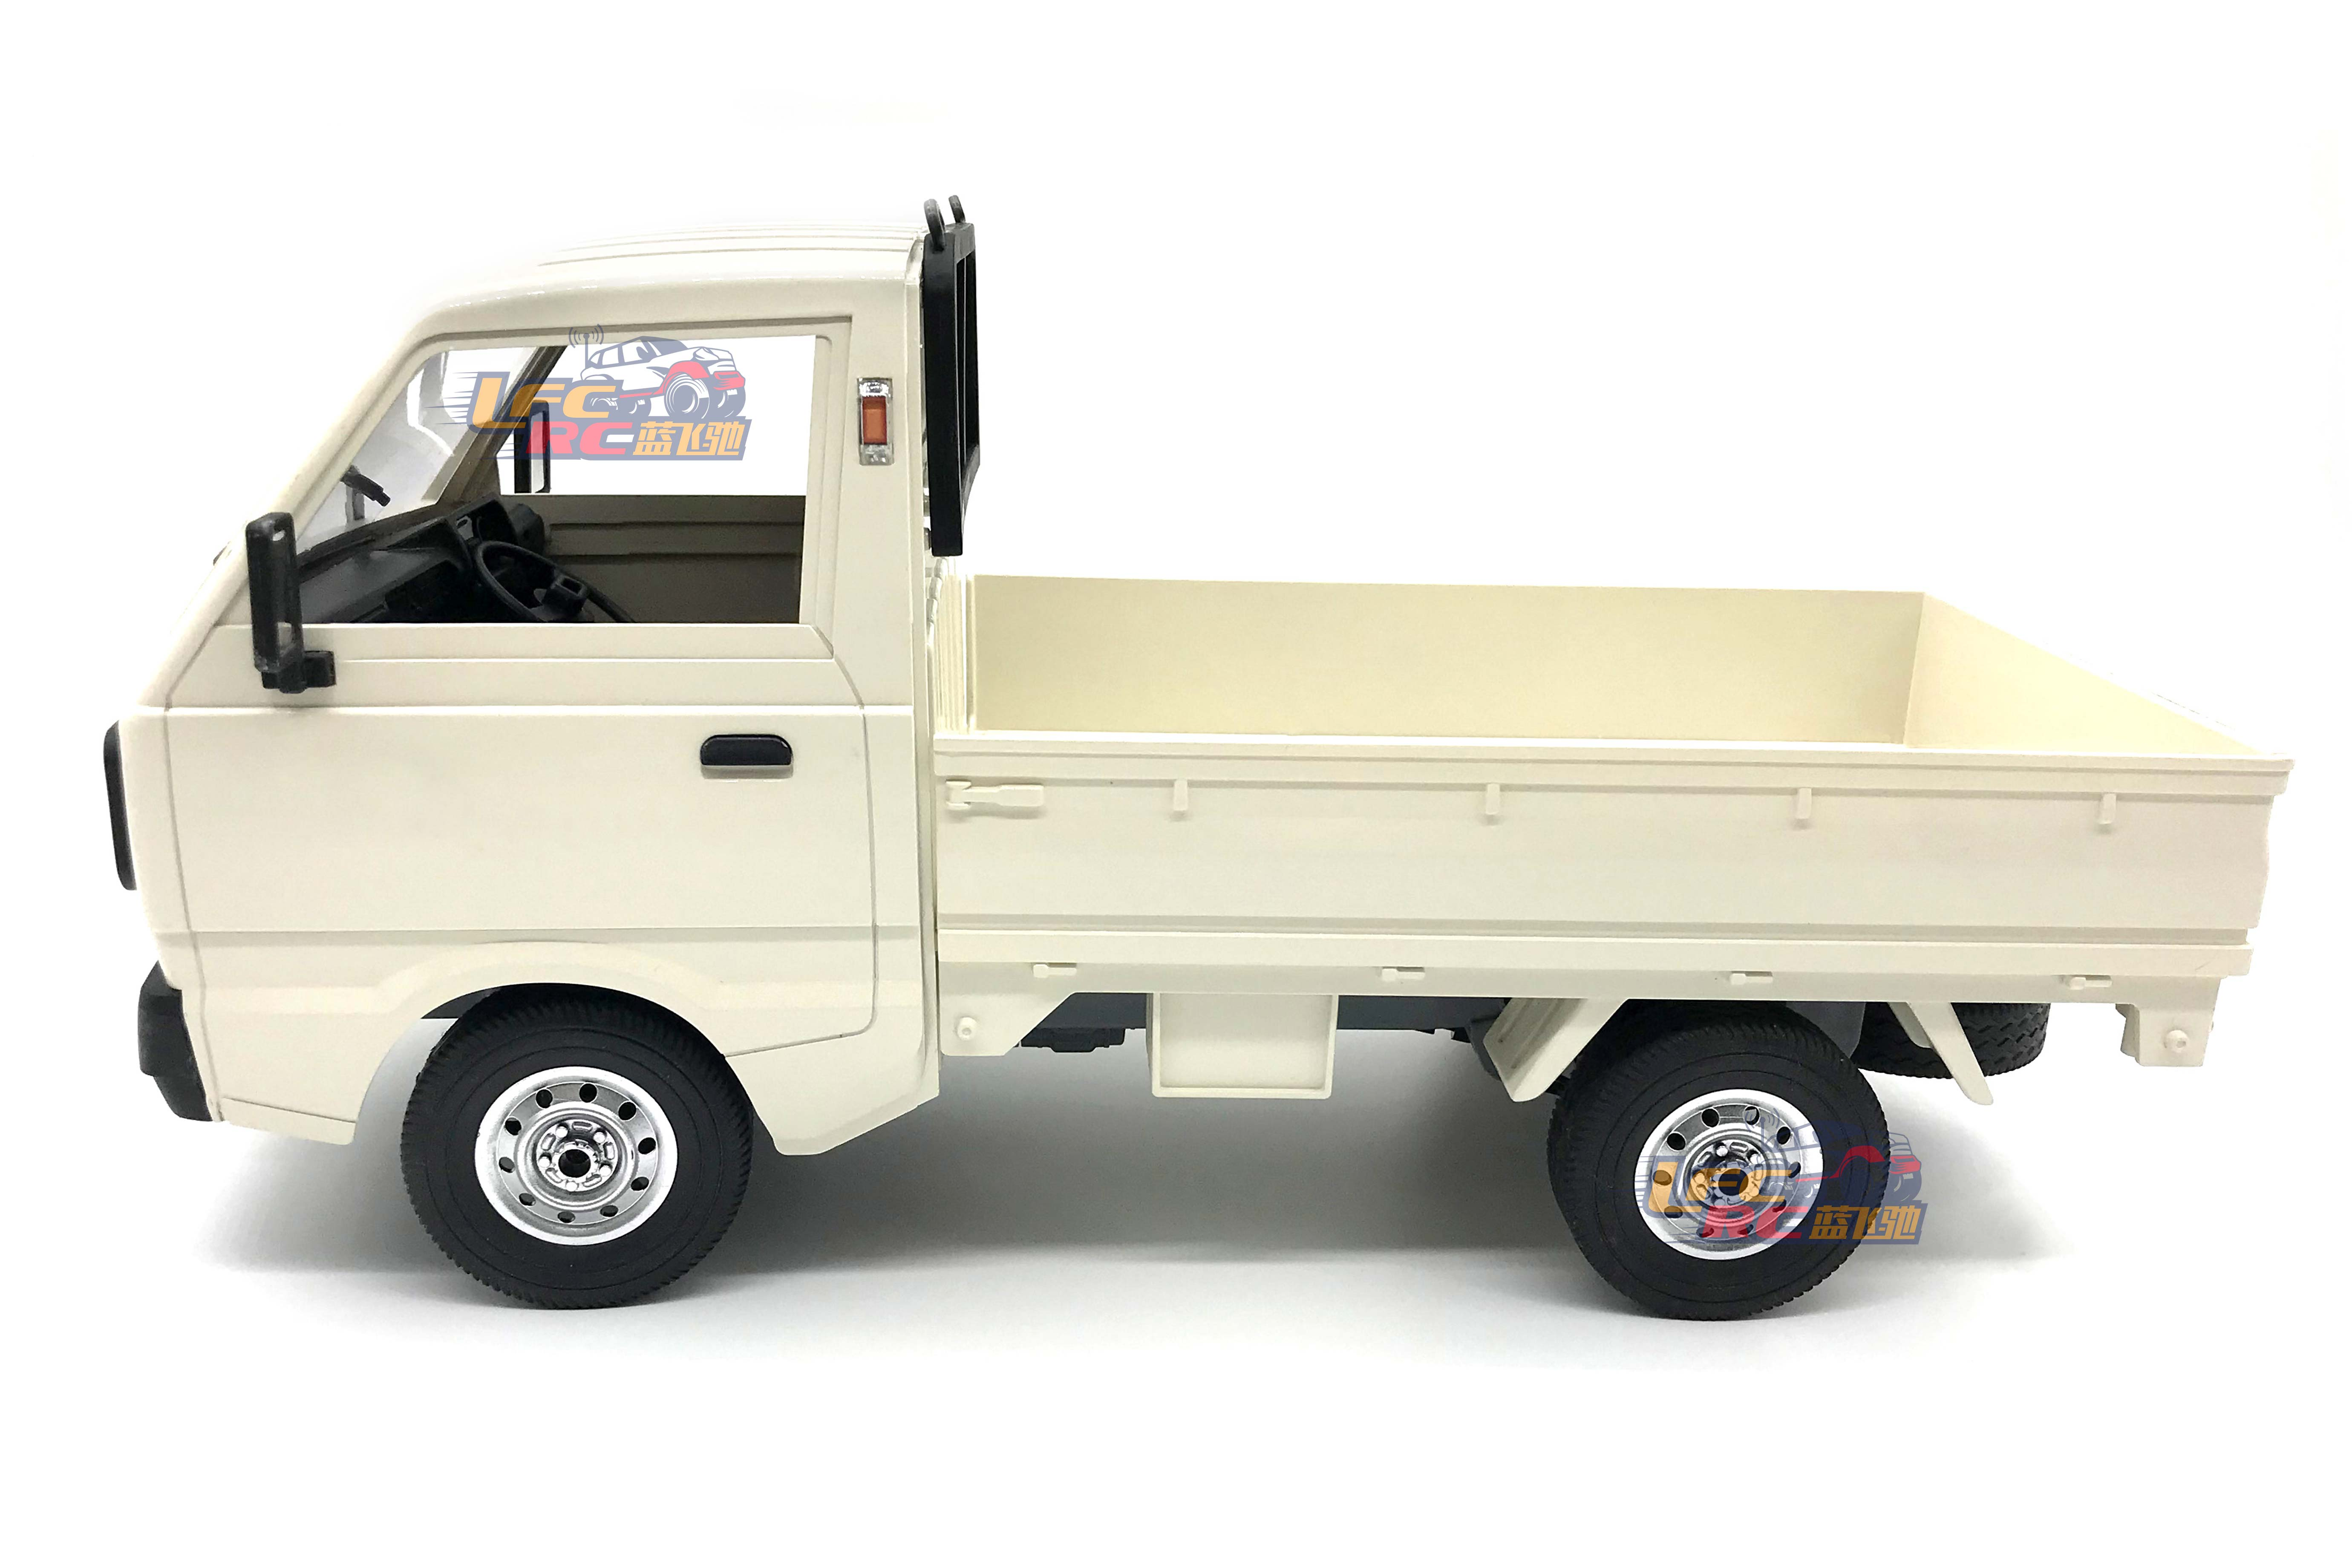 WPL D12 1/10 4WD RC Car, Simulation Drift Truck, On-road RC Car, 2.4G 2WD Military Truck Crawler Off Road RC Car, Vehicle Models Toy.